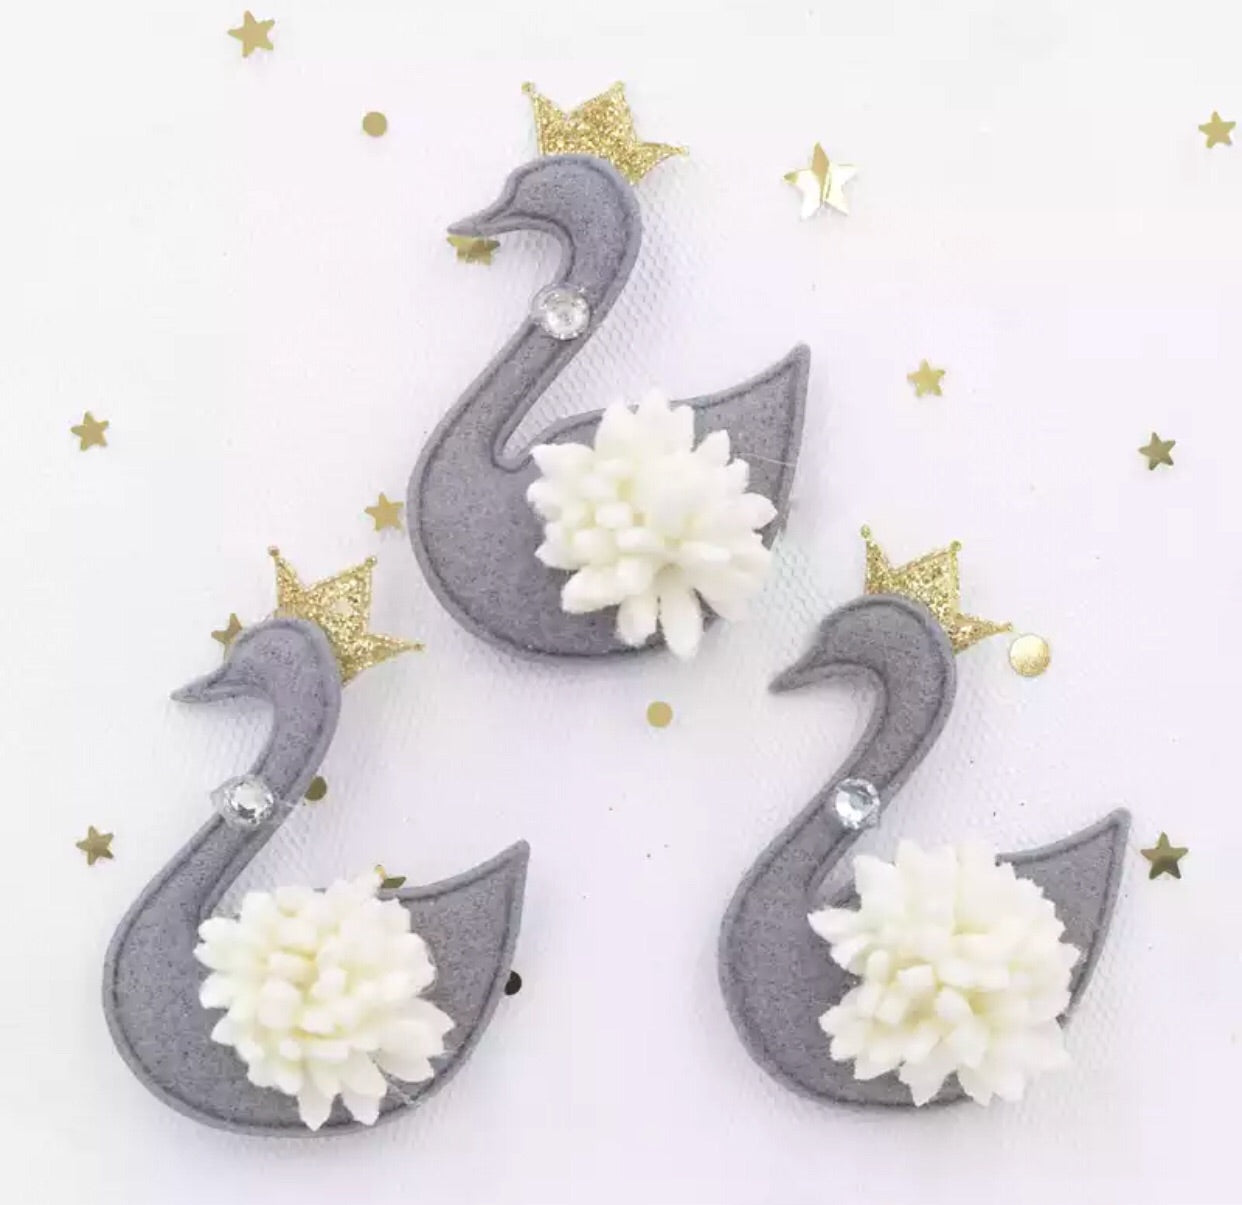 Swan Plush Applique - Choose Your Color - shabbyflowers.com